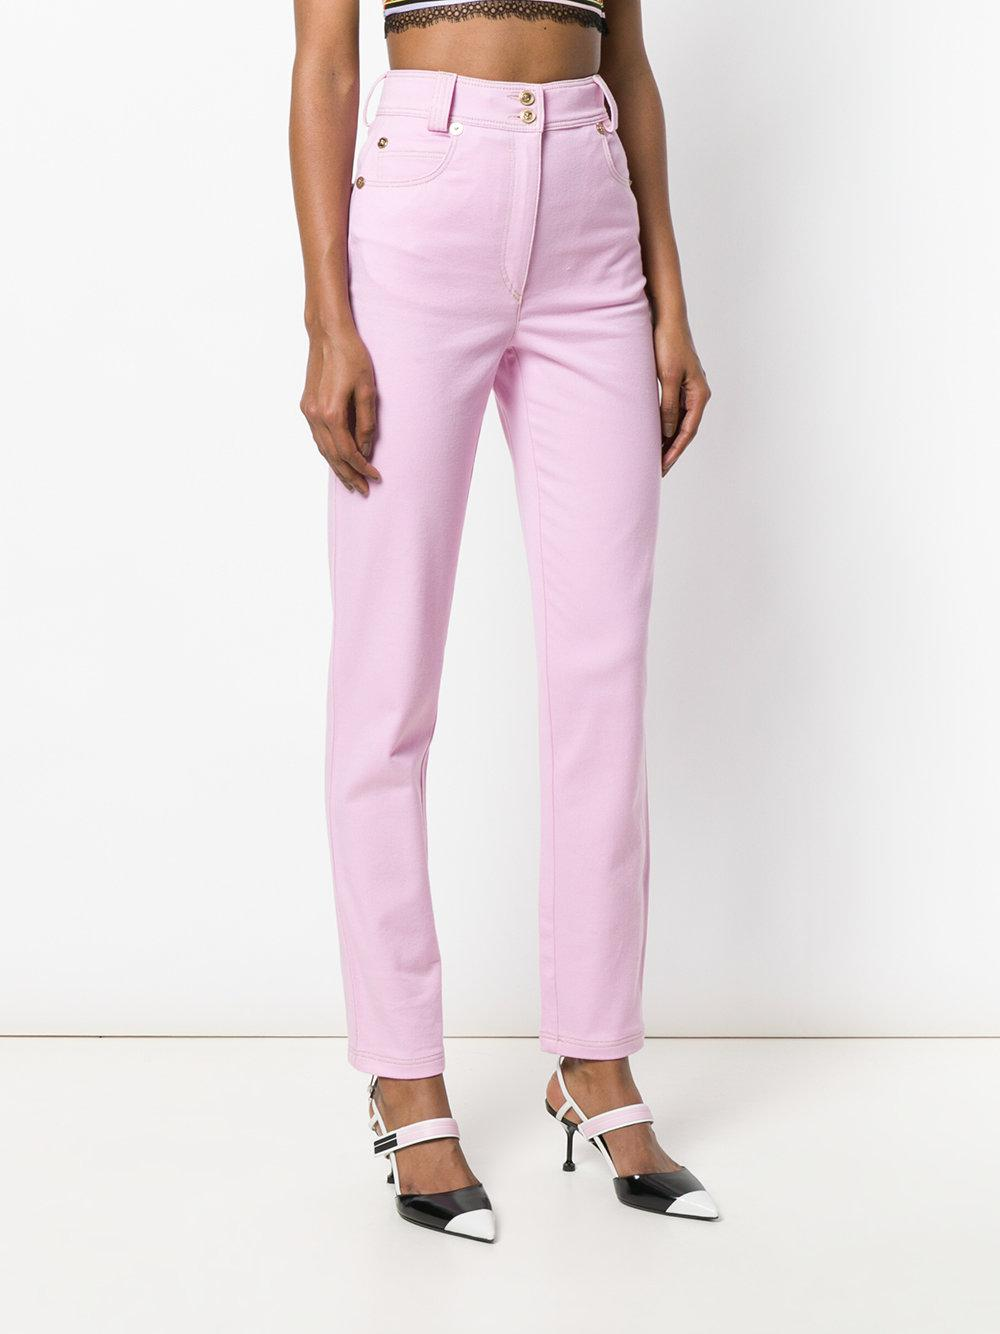 slim fit trousers - Pink & Purple Versace Cheap Sale Fashion Style Outlet Popular Clearance Store r2x3y3Leo